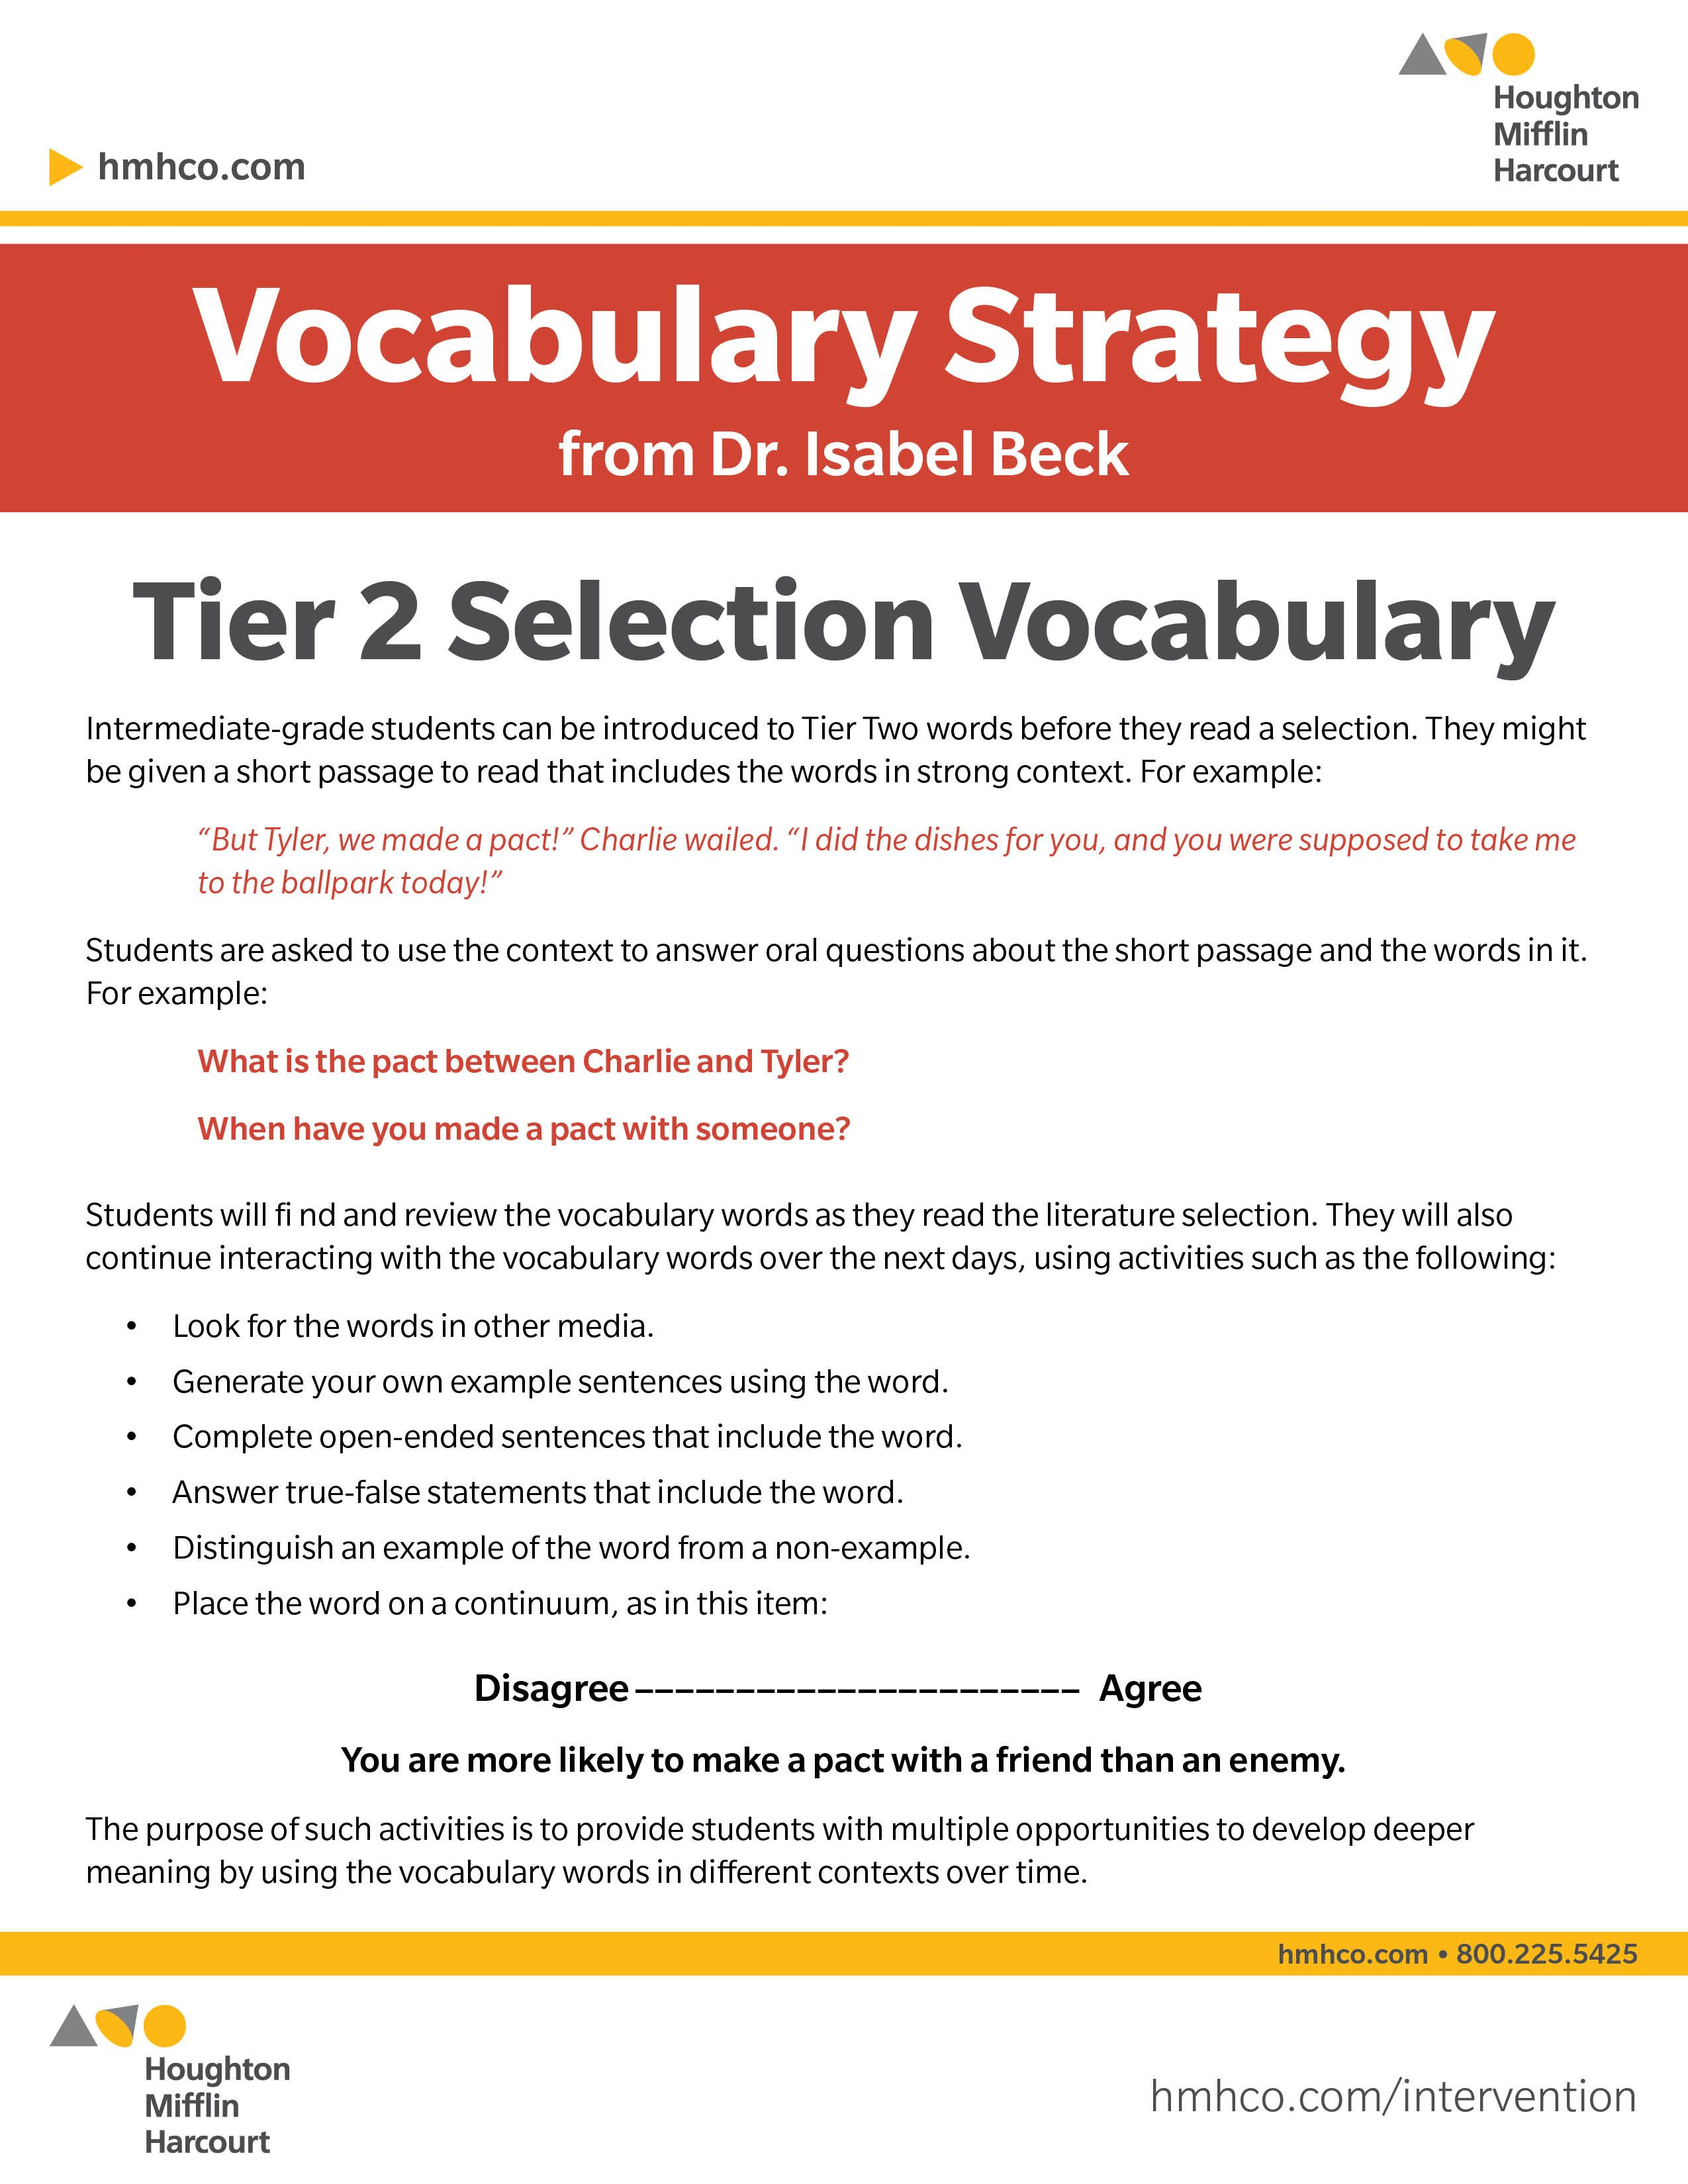 Vocabulary Strategy: Introducing Tier Two selection vocabulary